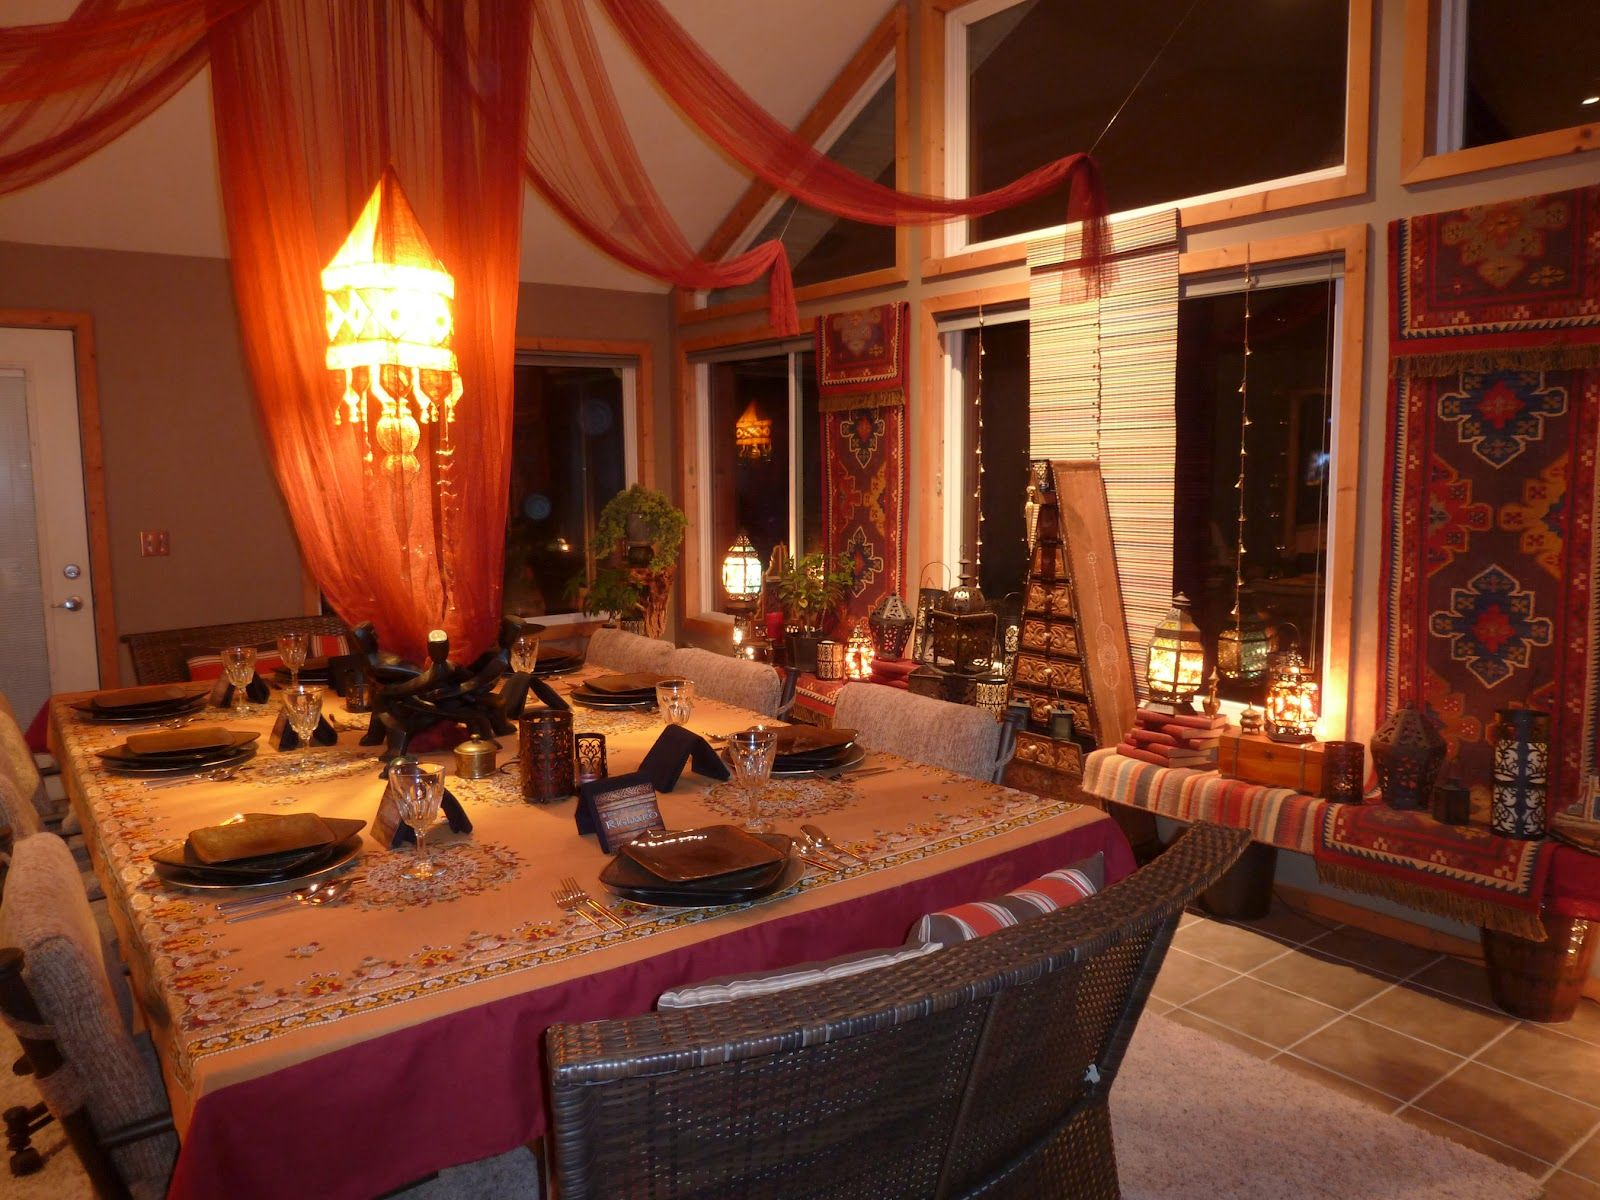 Moroccan Themed Room Decor Beautiful Pictures Photos Of